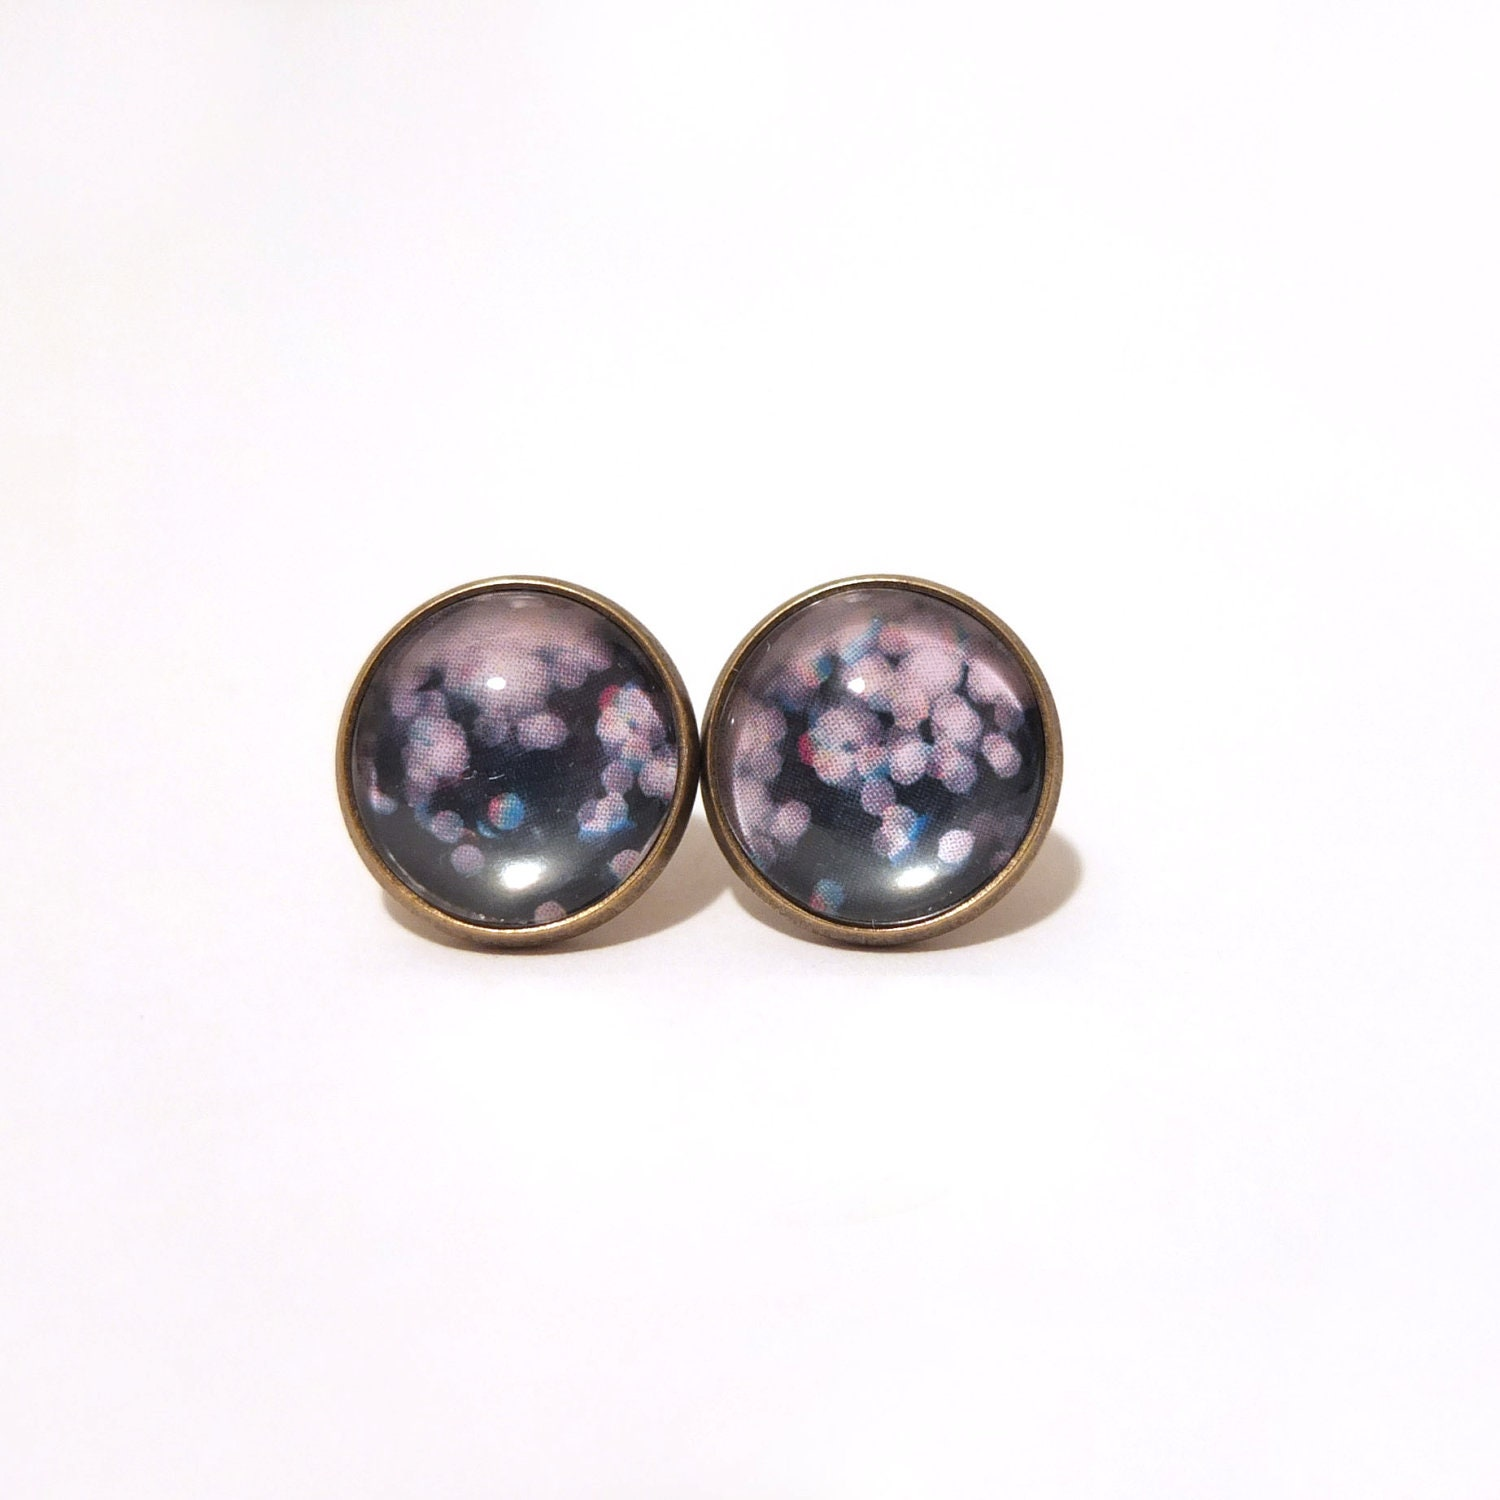 Stud Earrings - Dazzling Night, Bokeh, Galaxy, Dark Blue, Bronze, Post Earrings, Earrings Stud, Simple, Modern, Chic, Blur, Haze